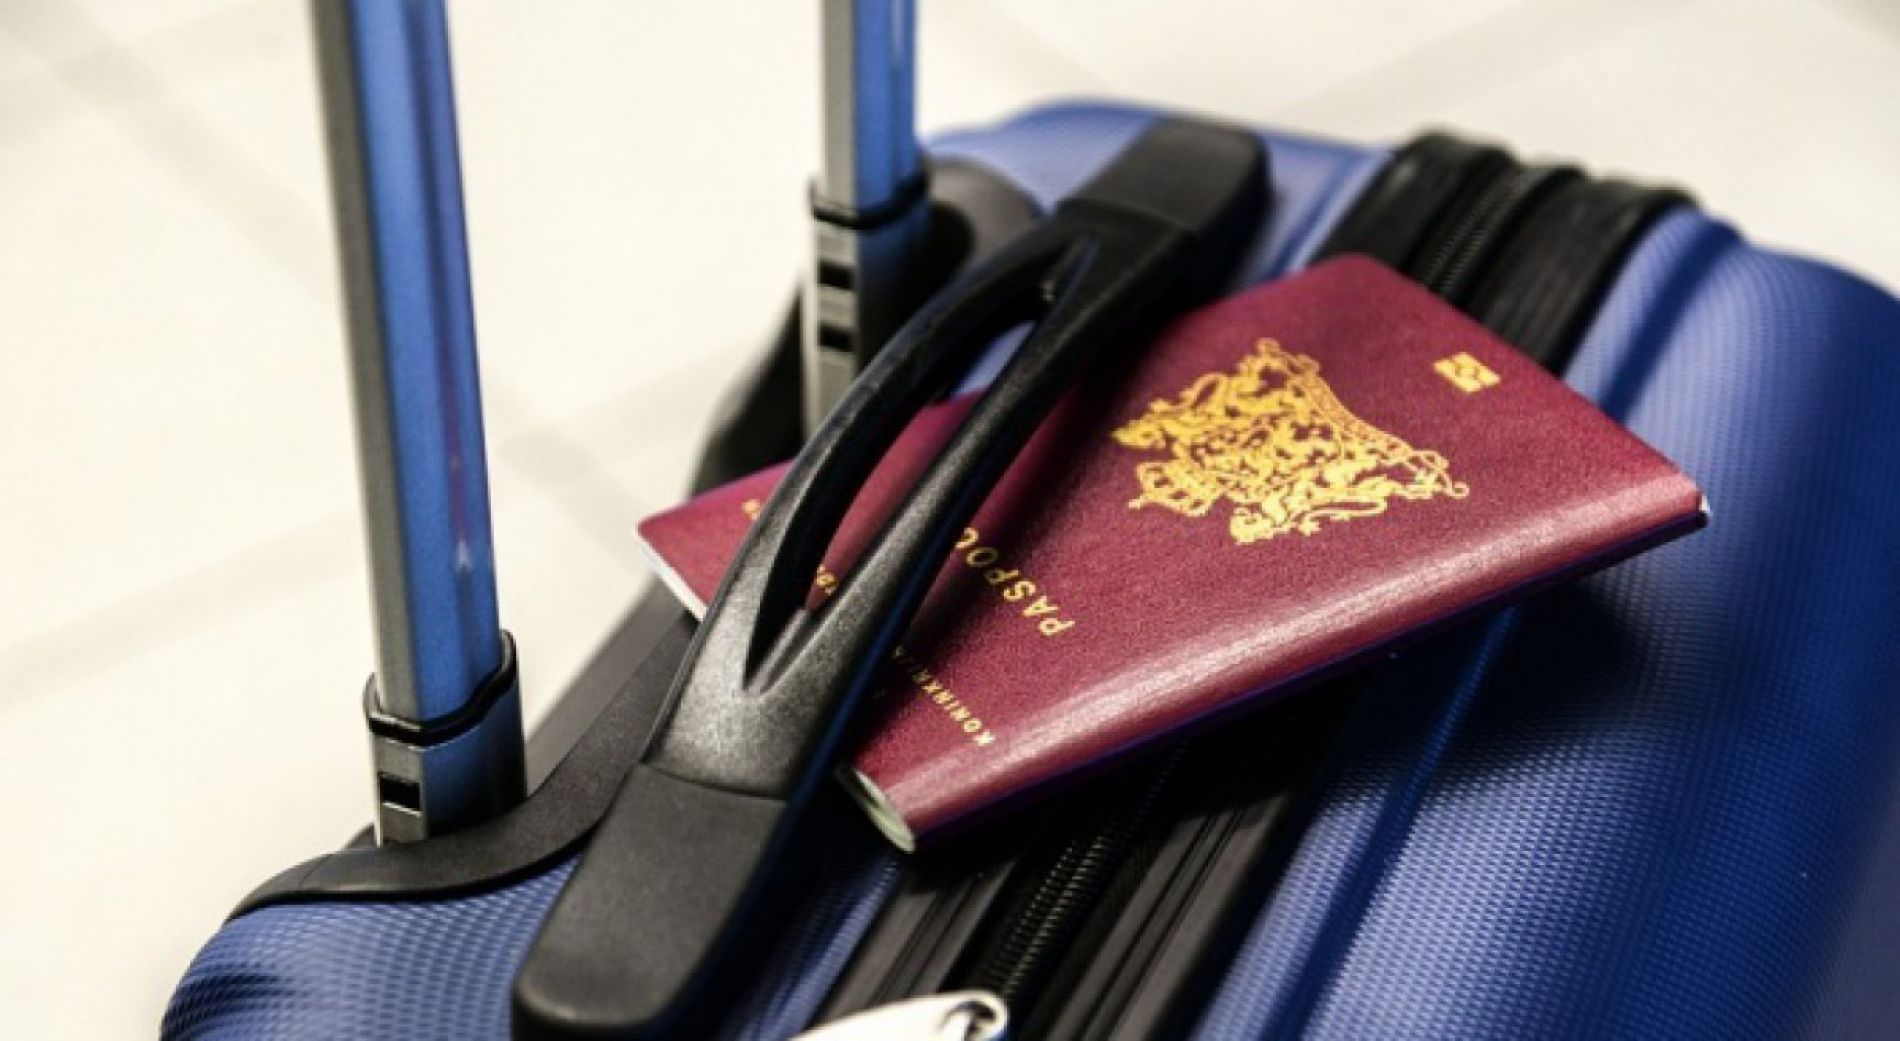 Bulgarians with diplomatic and service passports will travel without a visa to Jordan